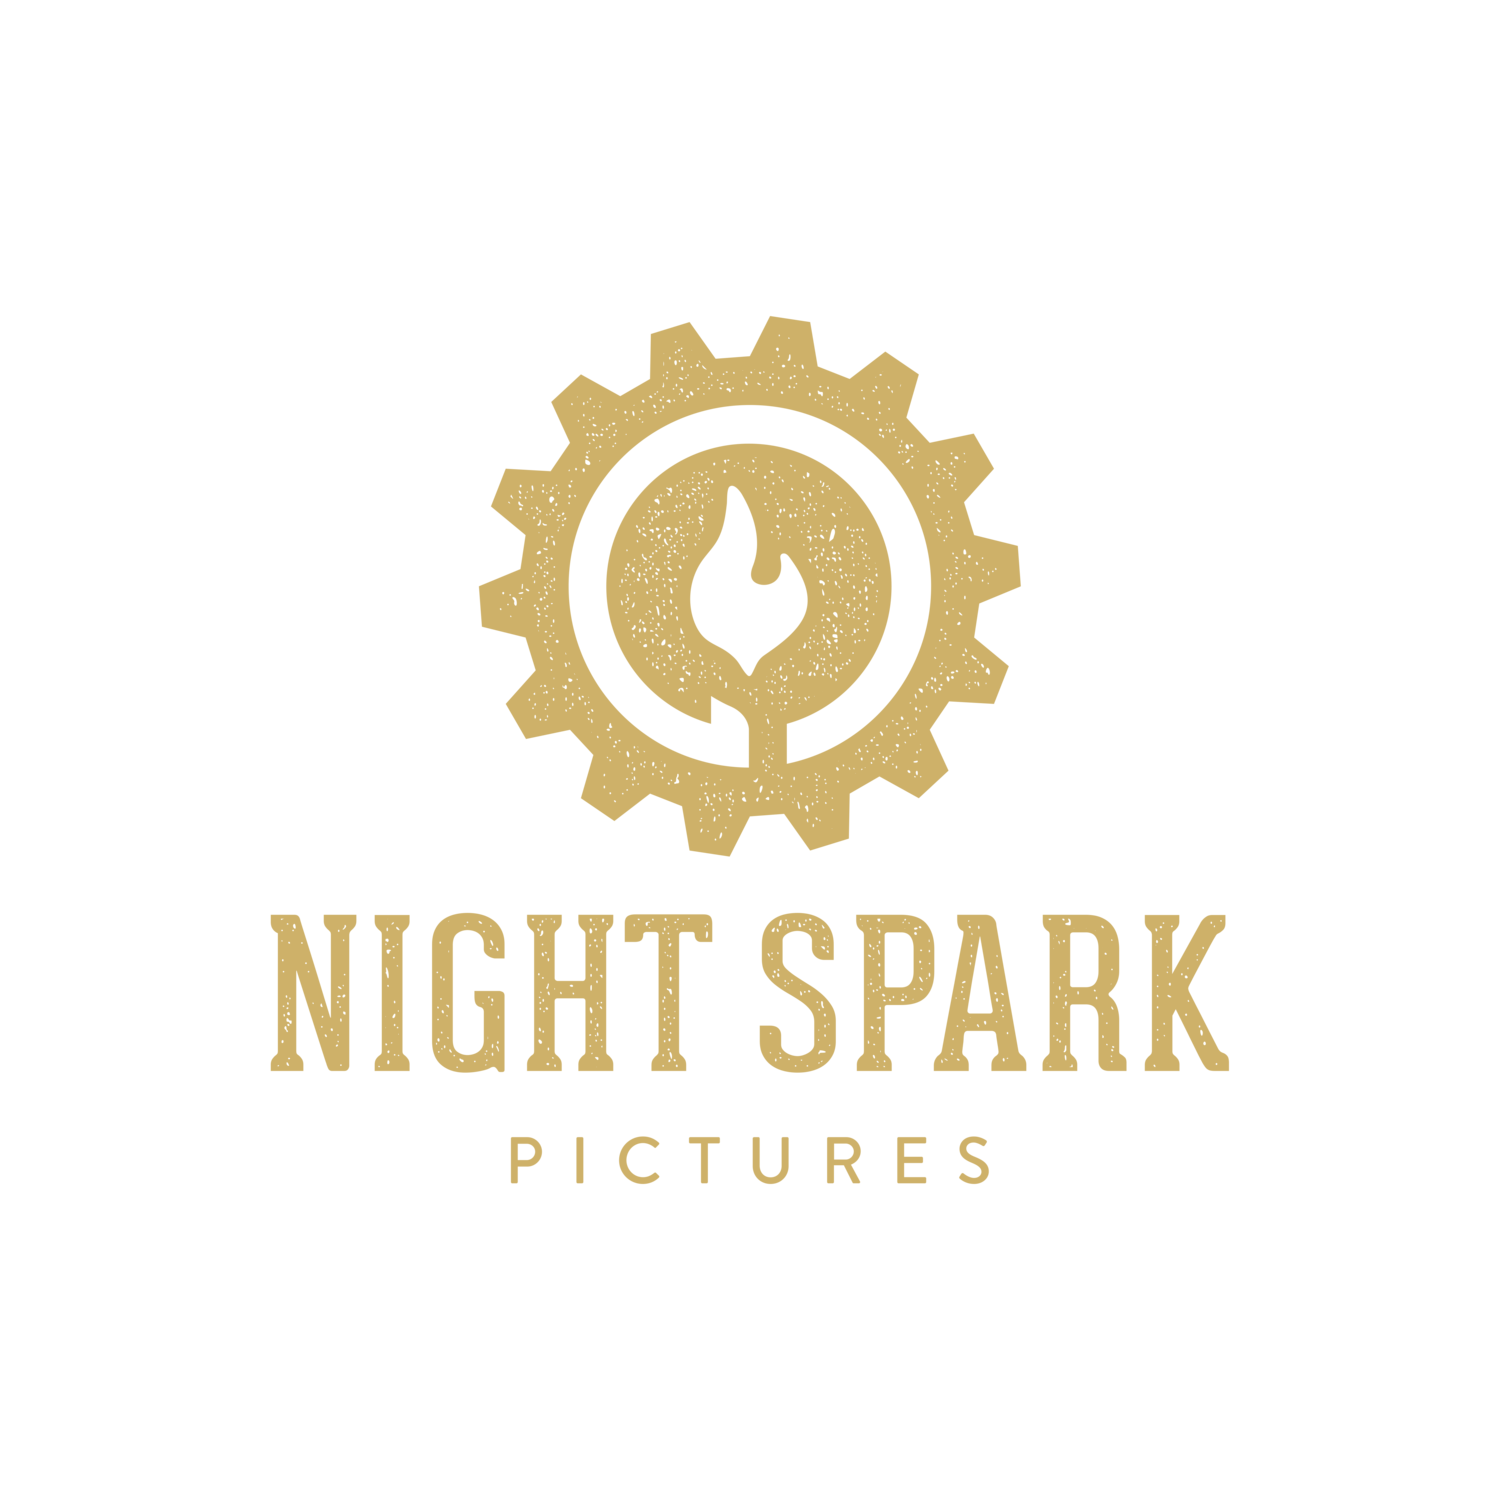 Night Spark Pictures